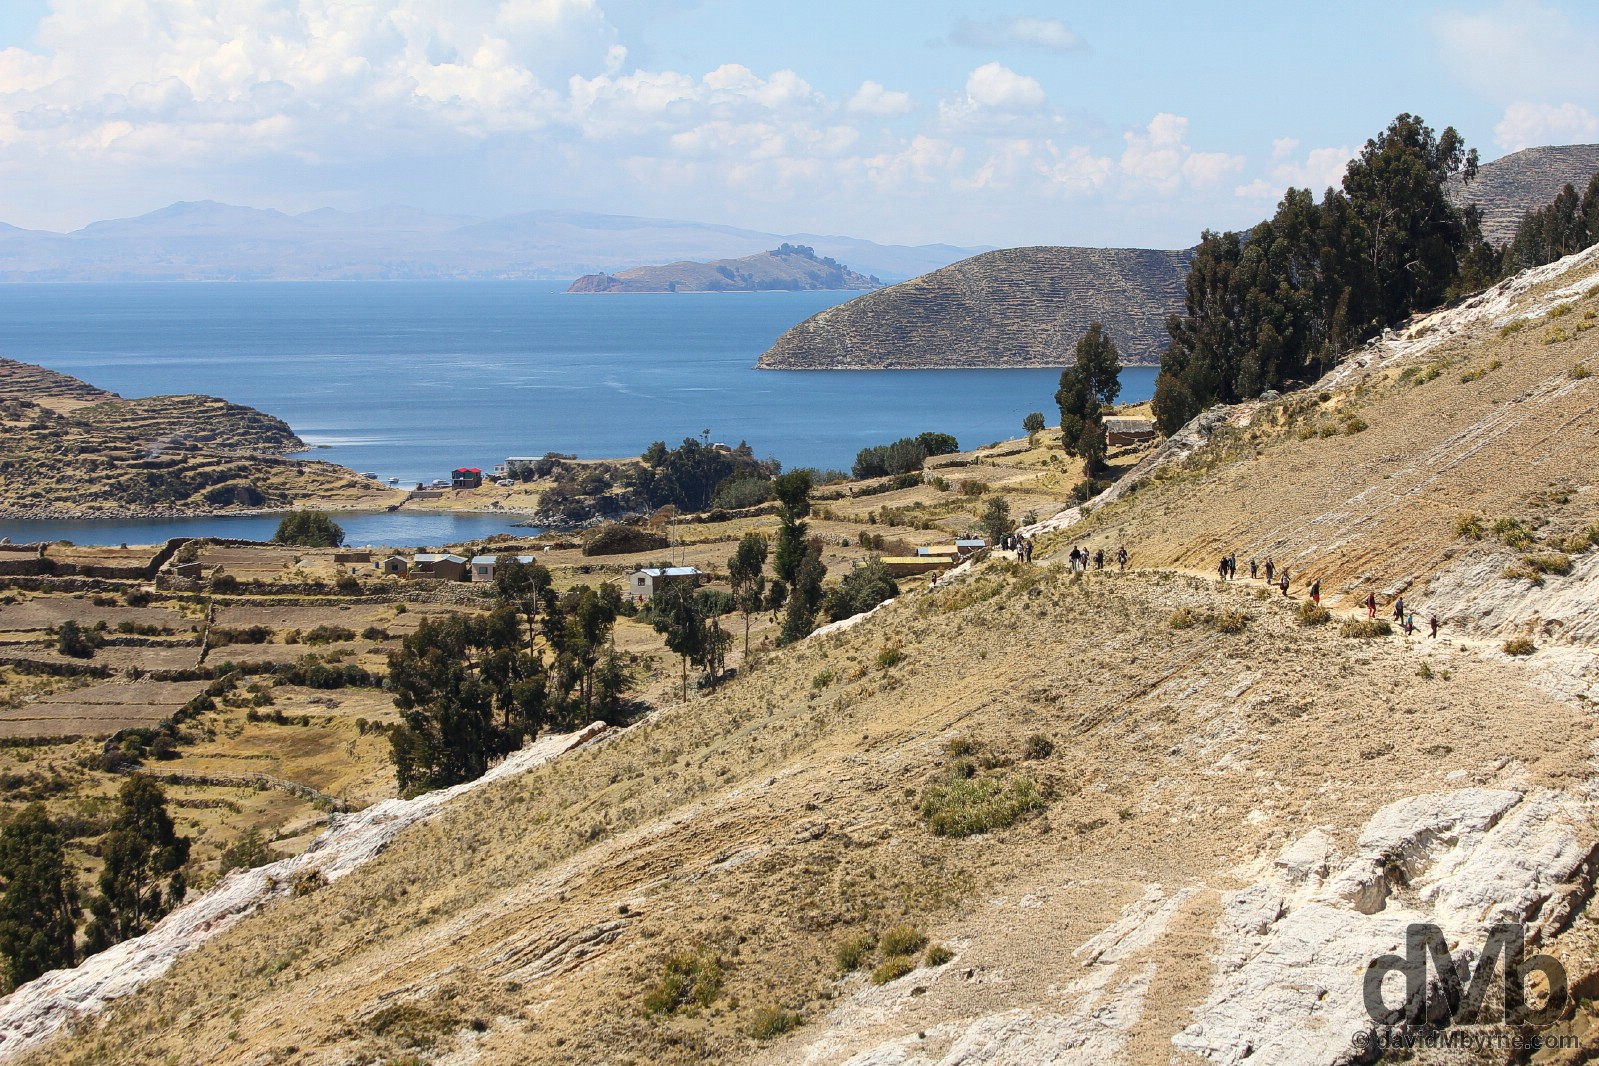 Walking on Isla del Sol in Lake Titicaca, Bolivia. August 24, 2015.